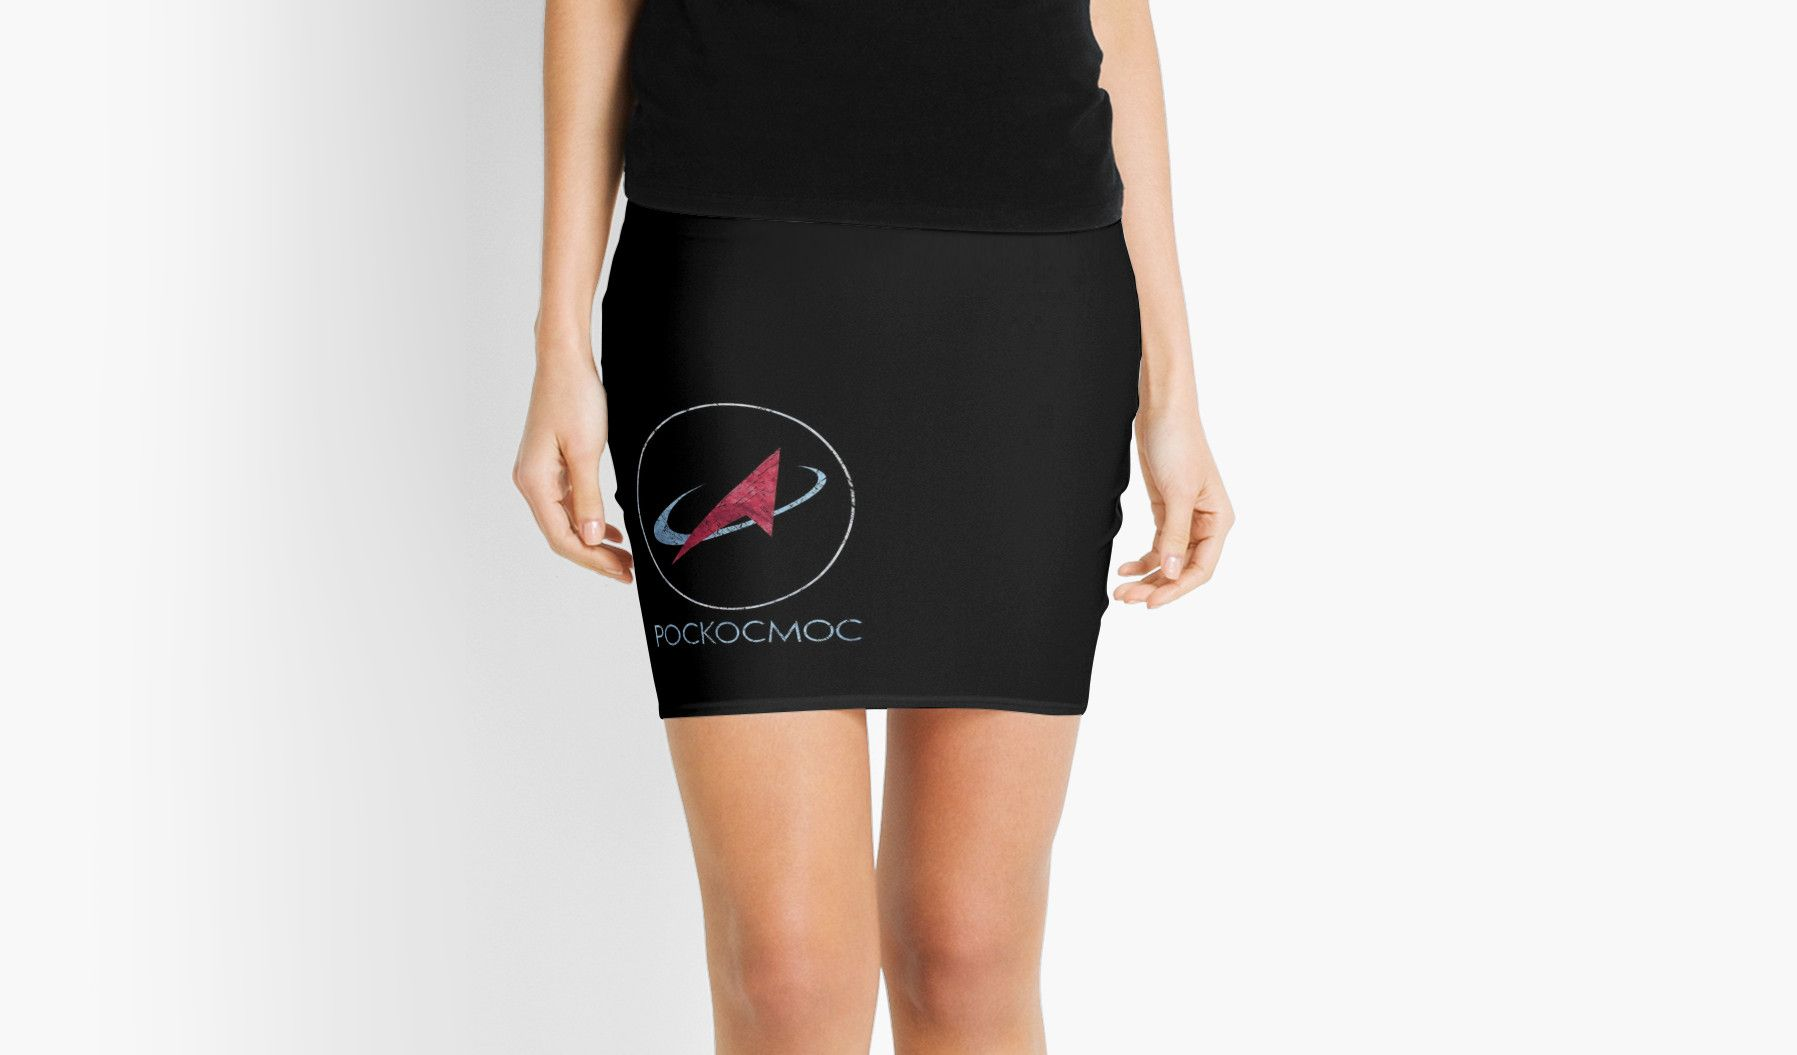 POCKOCKMOC Russian Space Agency by Lidra